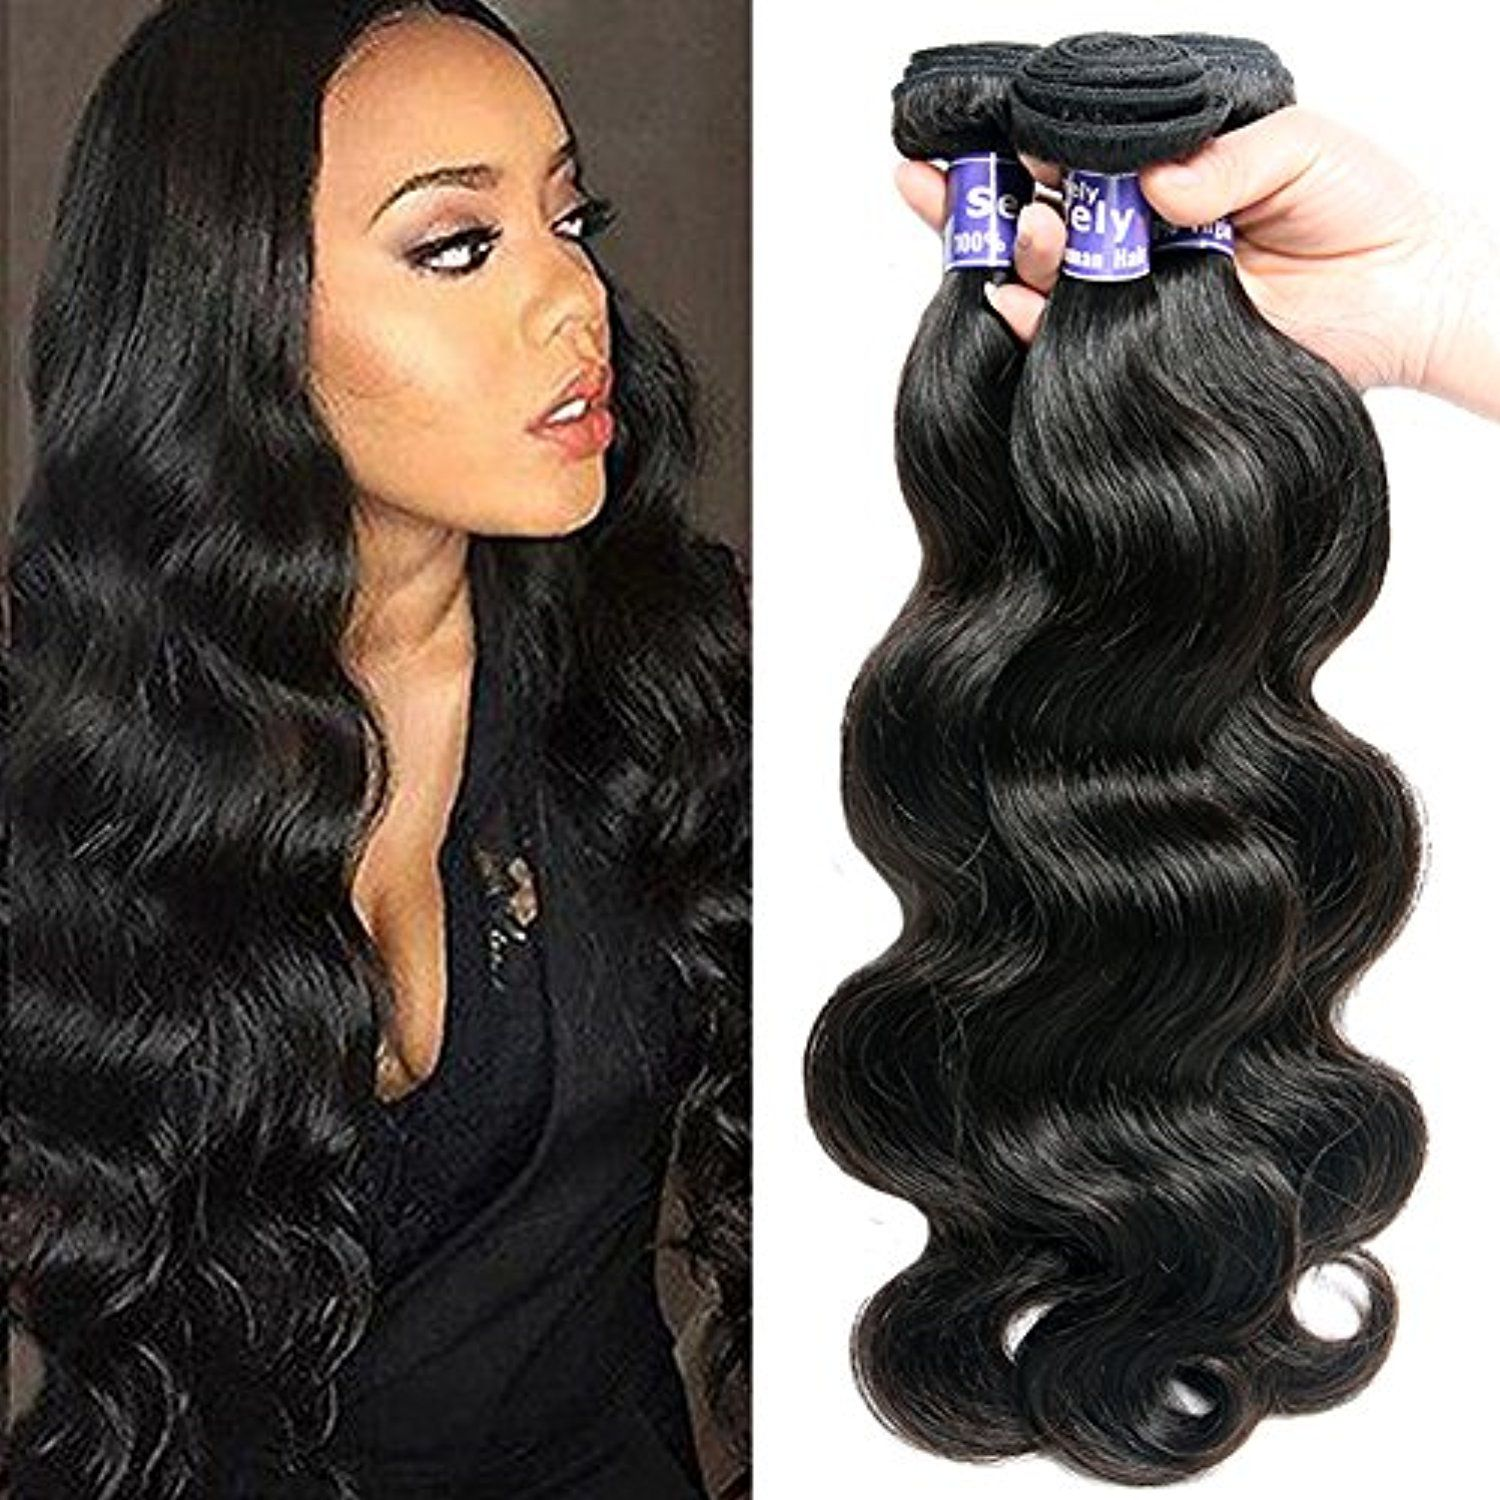 Semmely Brazilian Hair 3 Bundles Body Wave Grade 7a Unprocessed Virgin Human Hair Bundles Natural Black Color Tot Hair Bundles Human Hair Human Hair Extensions